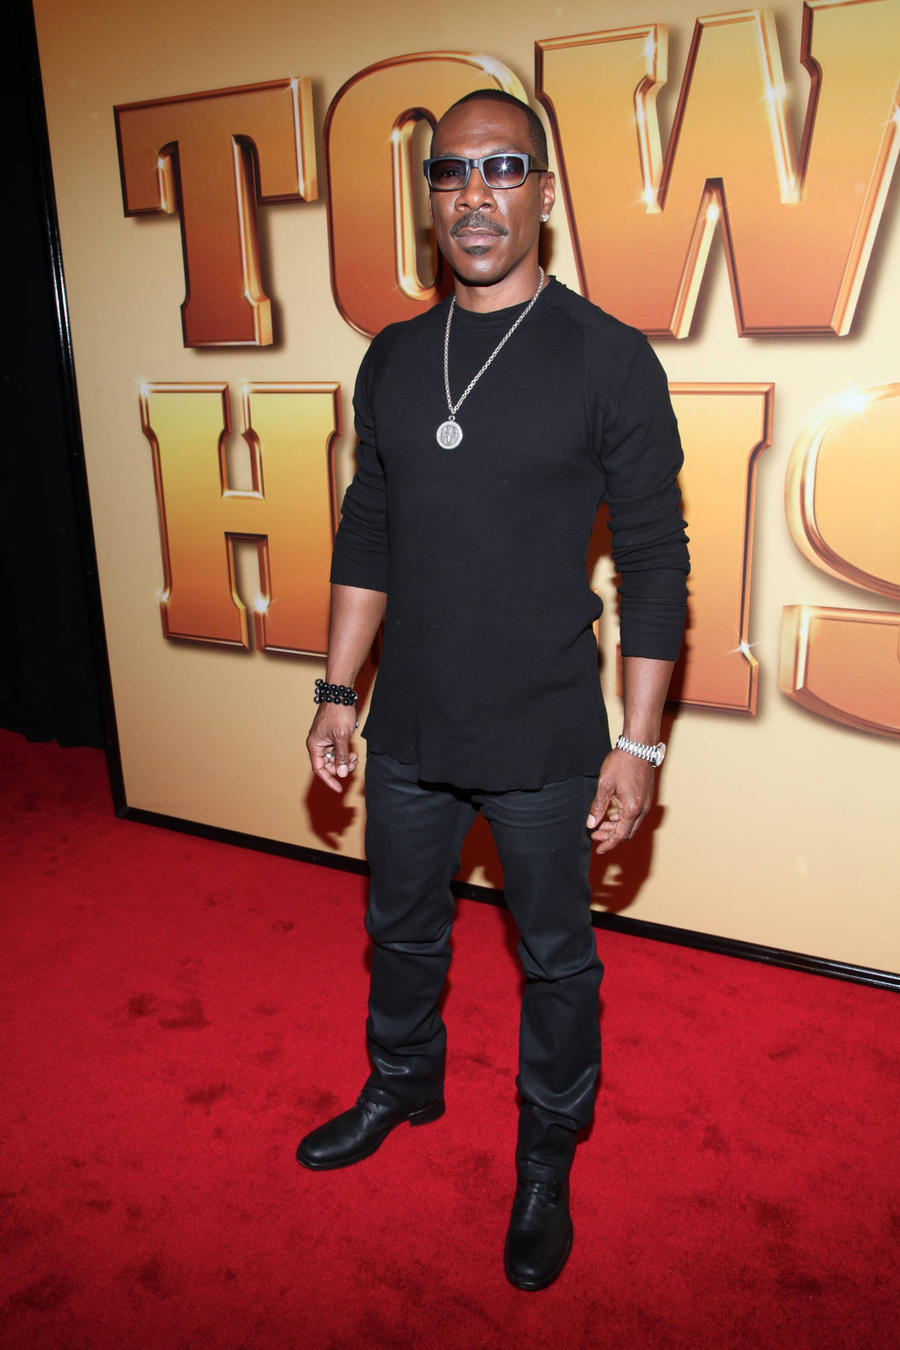 Eddie Murphy Took A Break From Hollywood So People Wouldn't Get 'Sick' Of His Face